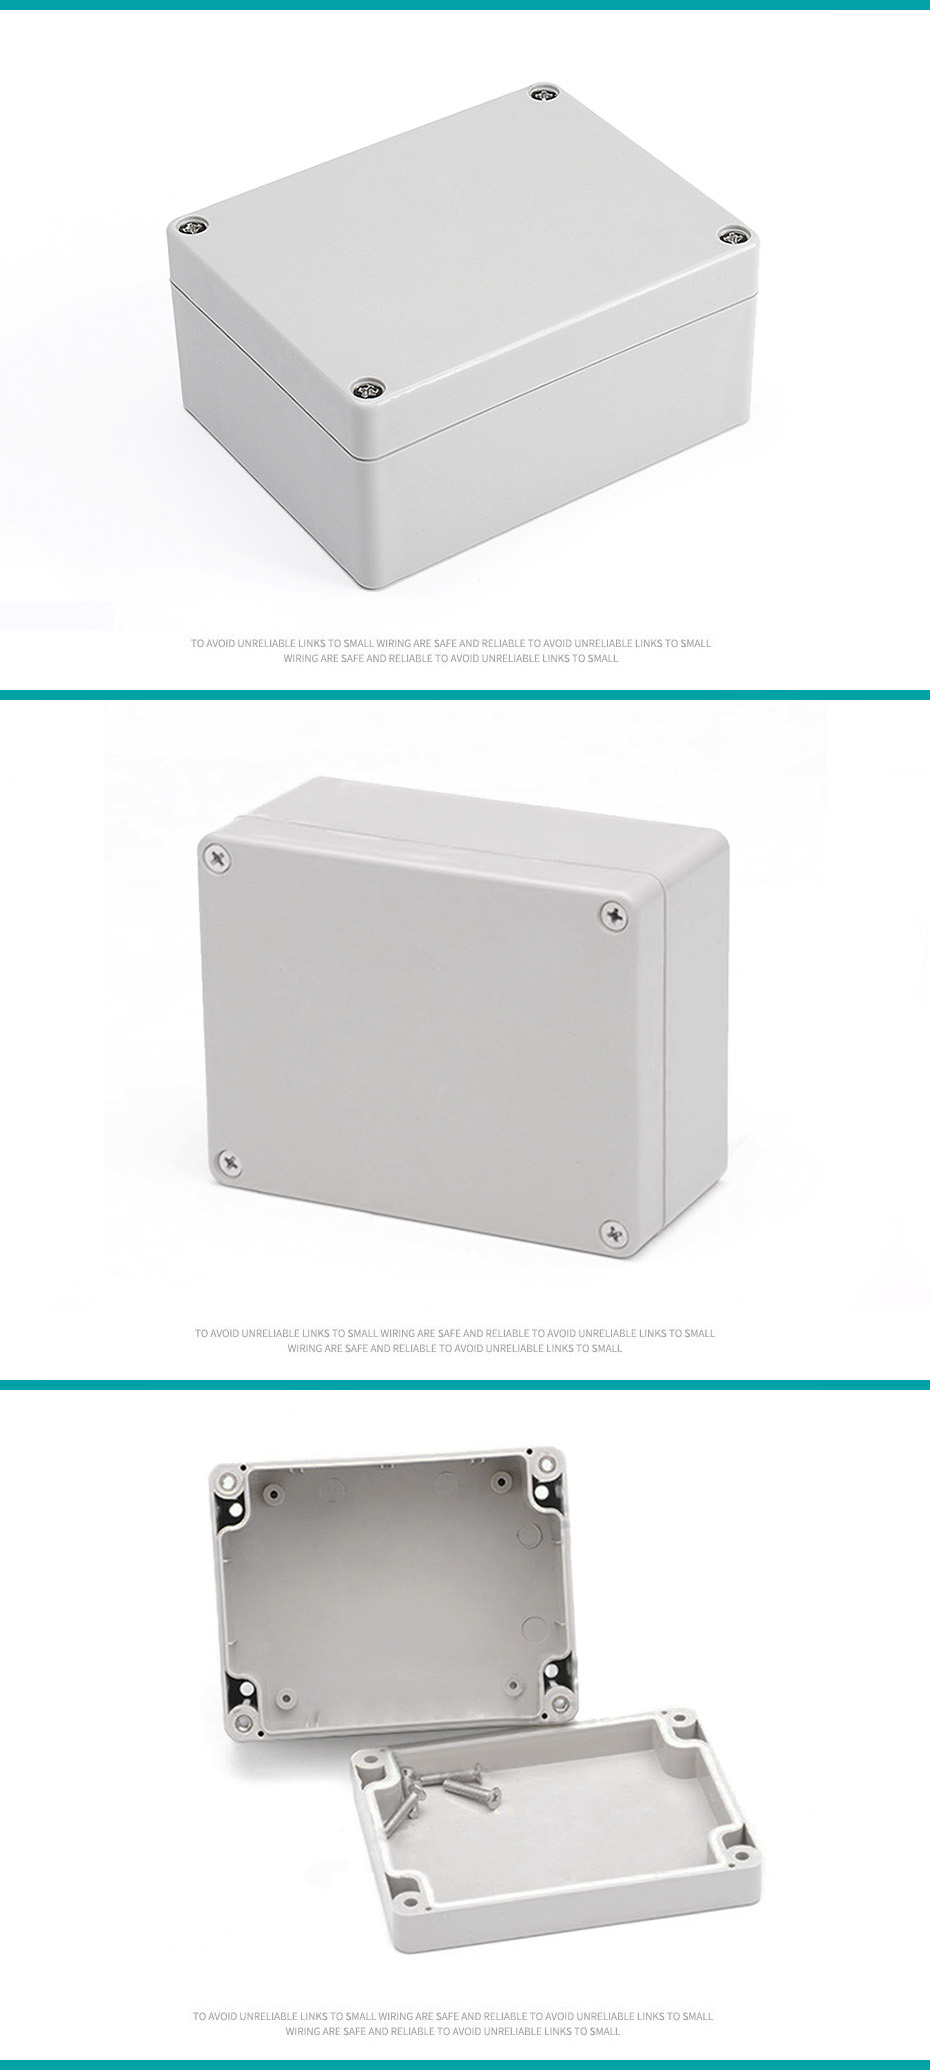 115mmx90mmx55mm uxcell 4.53x3.54x2.17 ABS Junction Box Universal Project Enclosure Gray a18013000ux0092